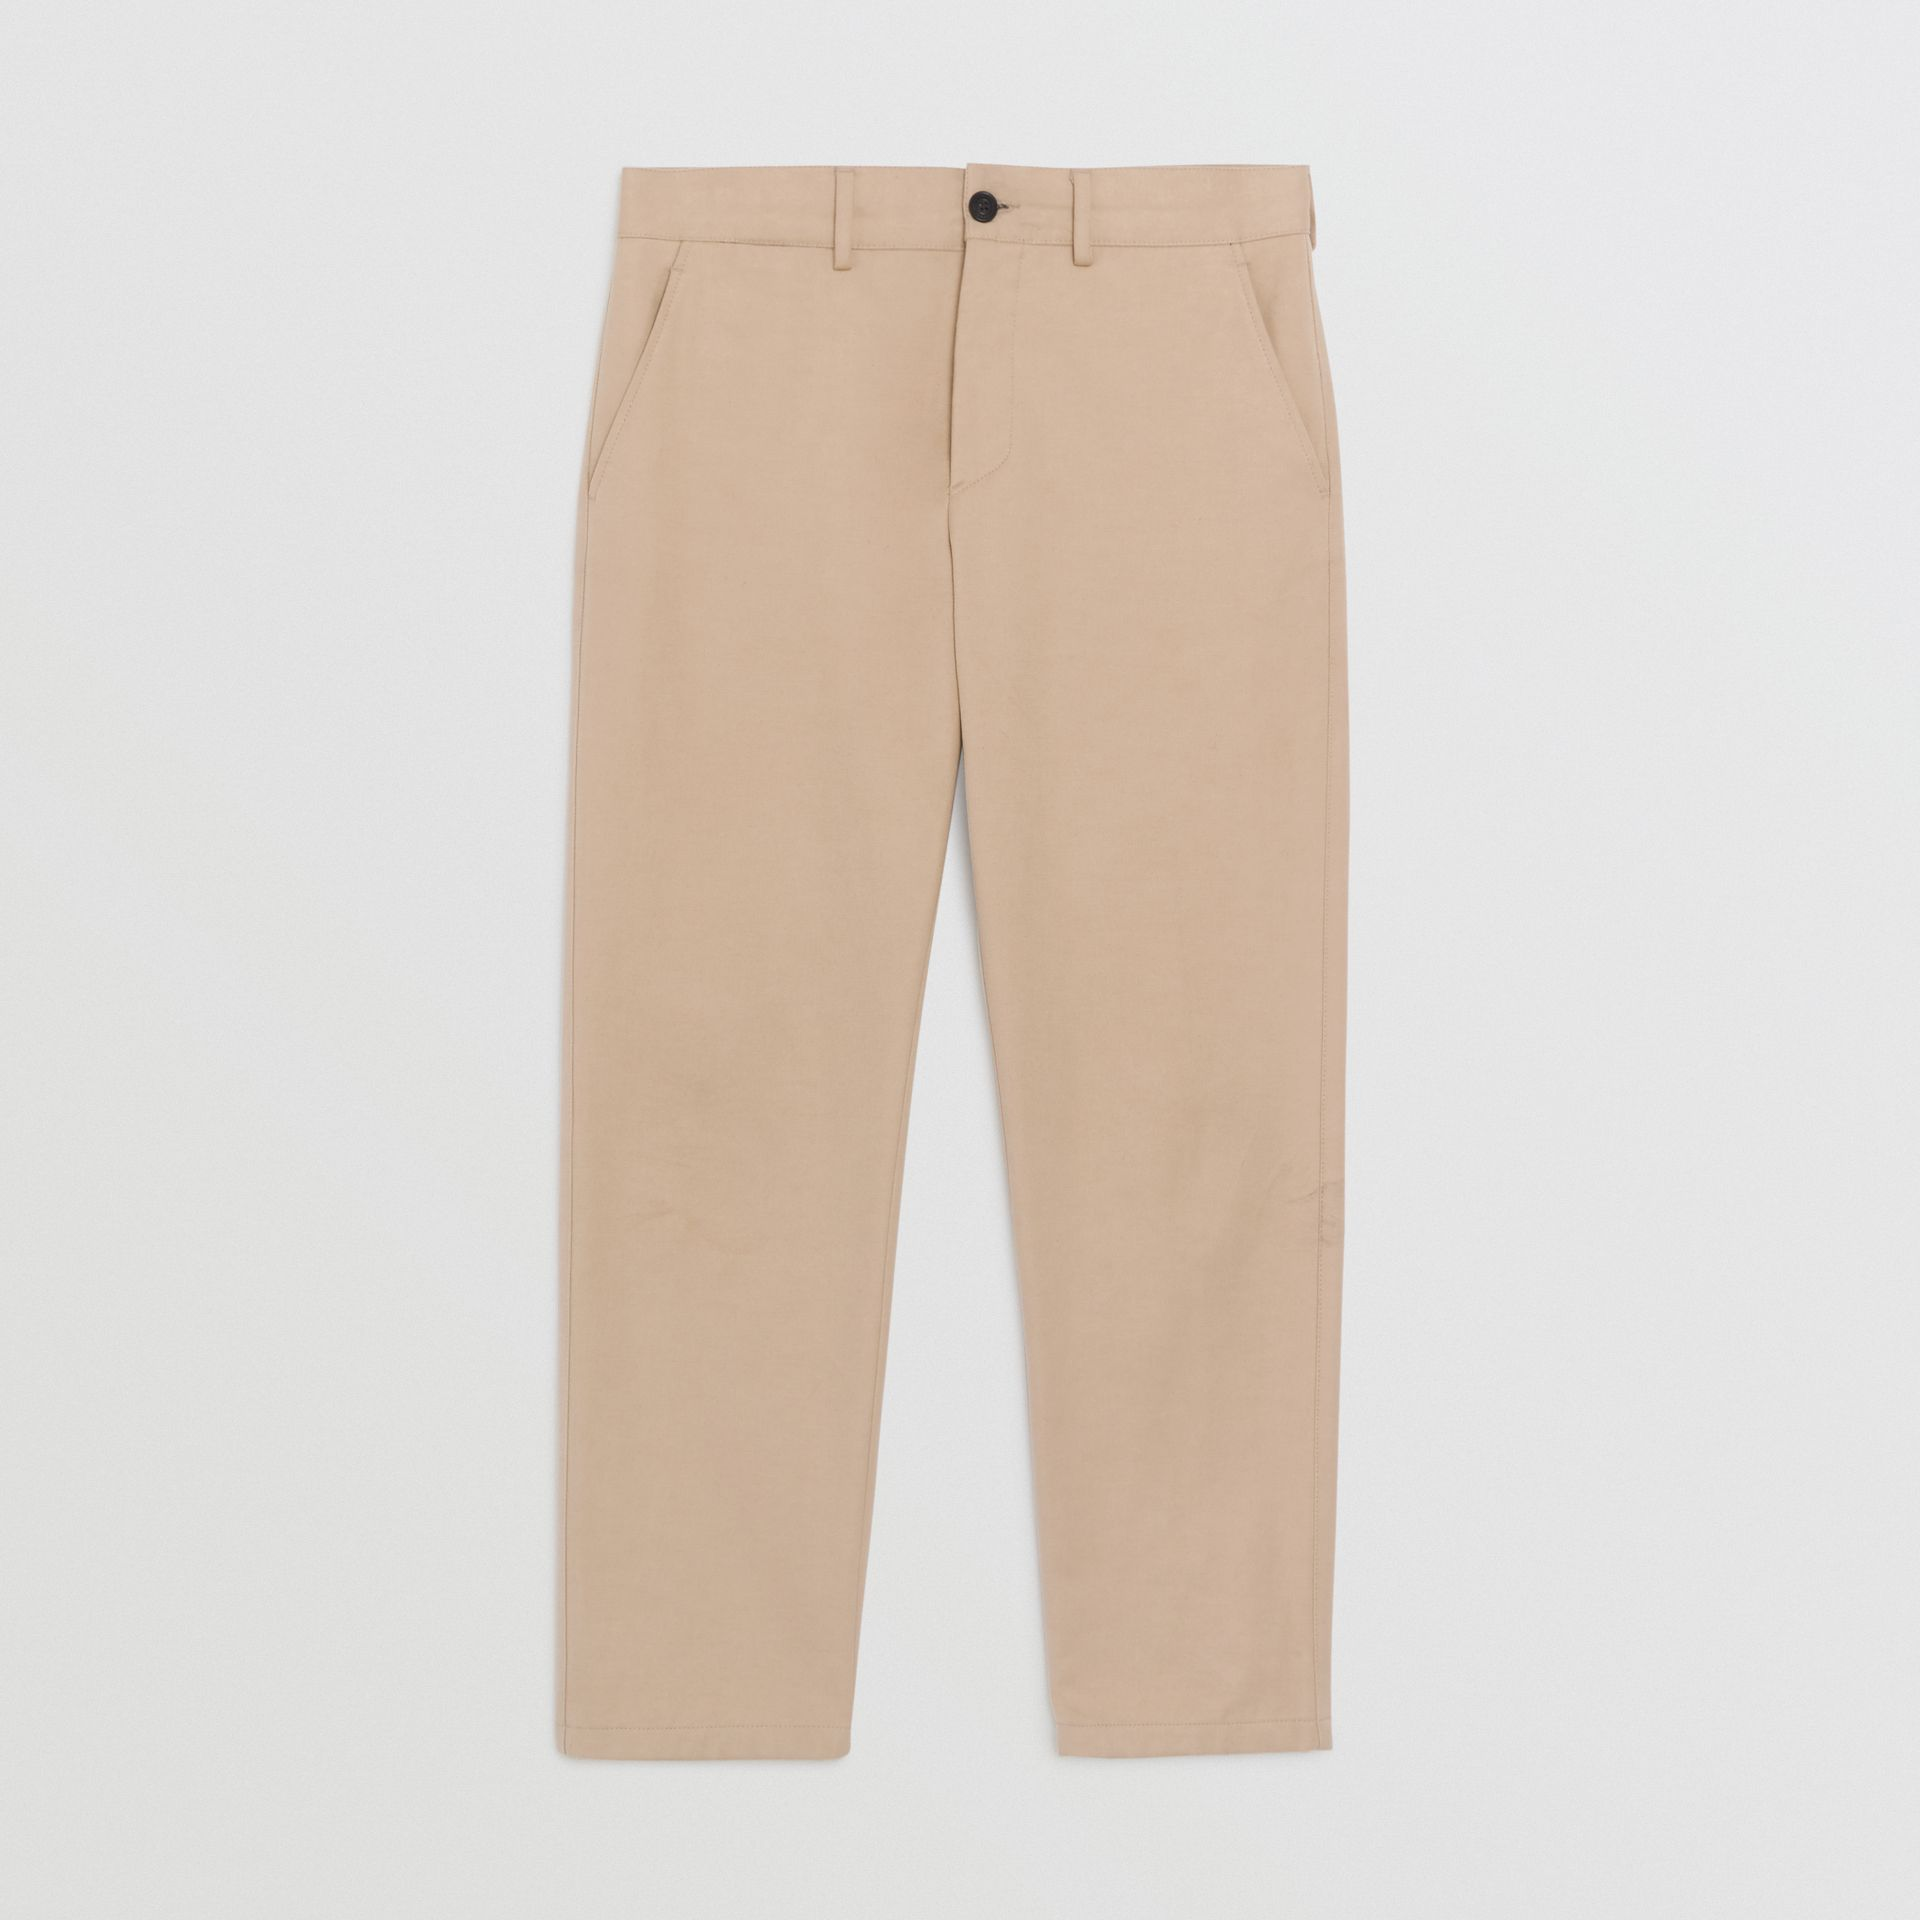 Burberry Stone Slim Fit Cotton Blend Chinos